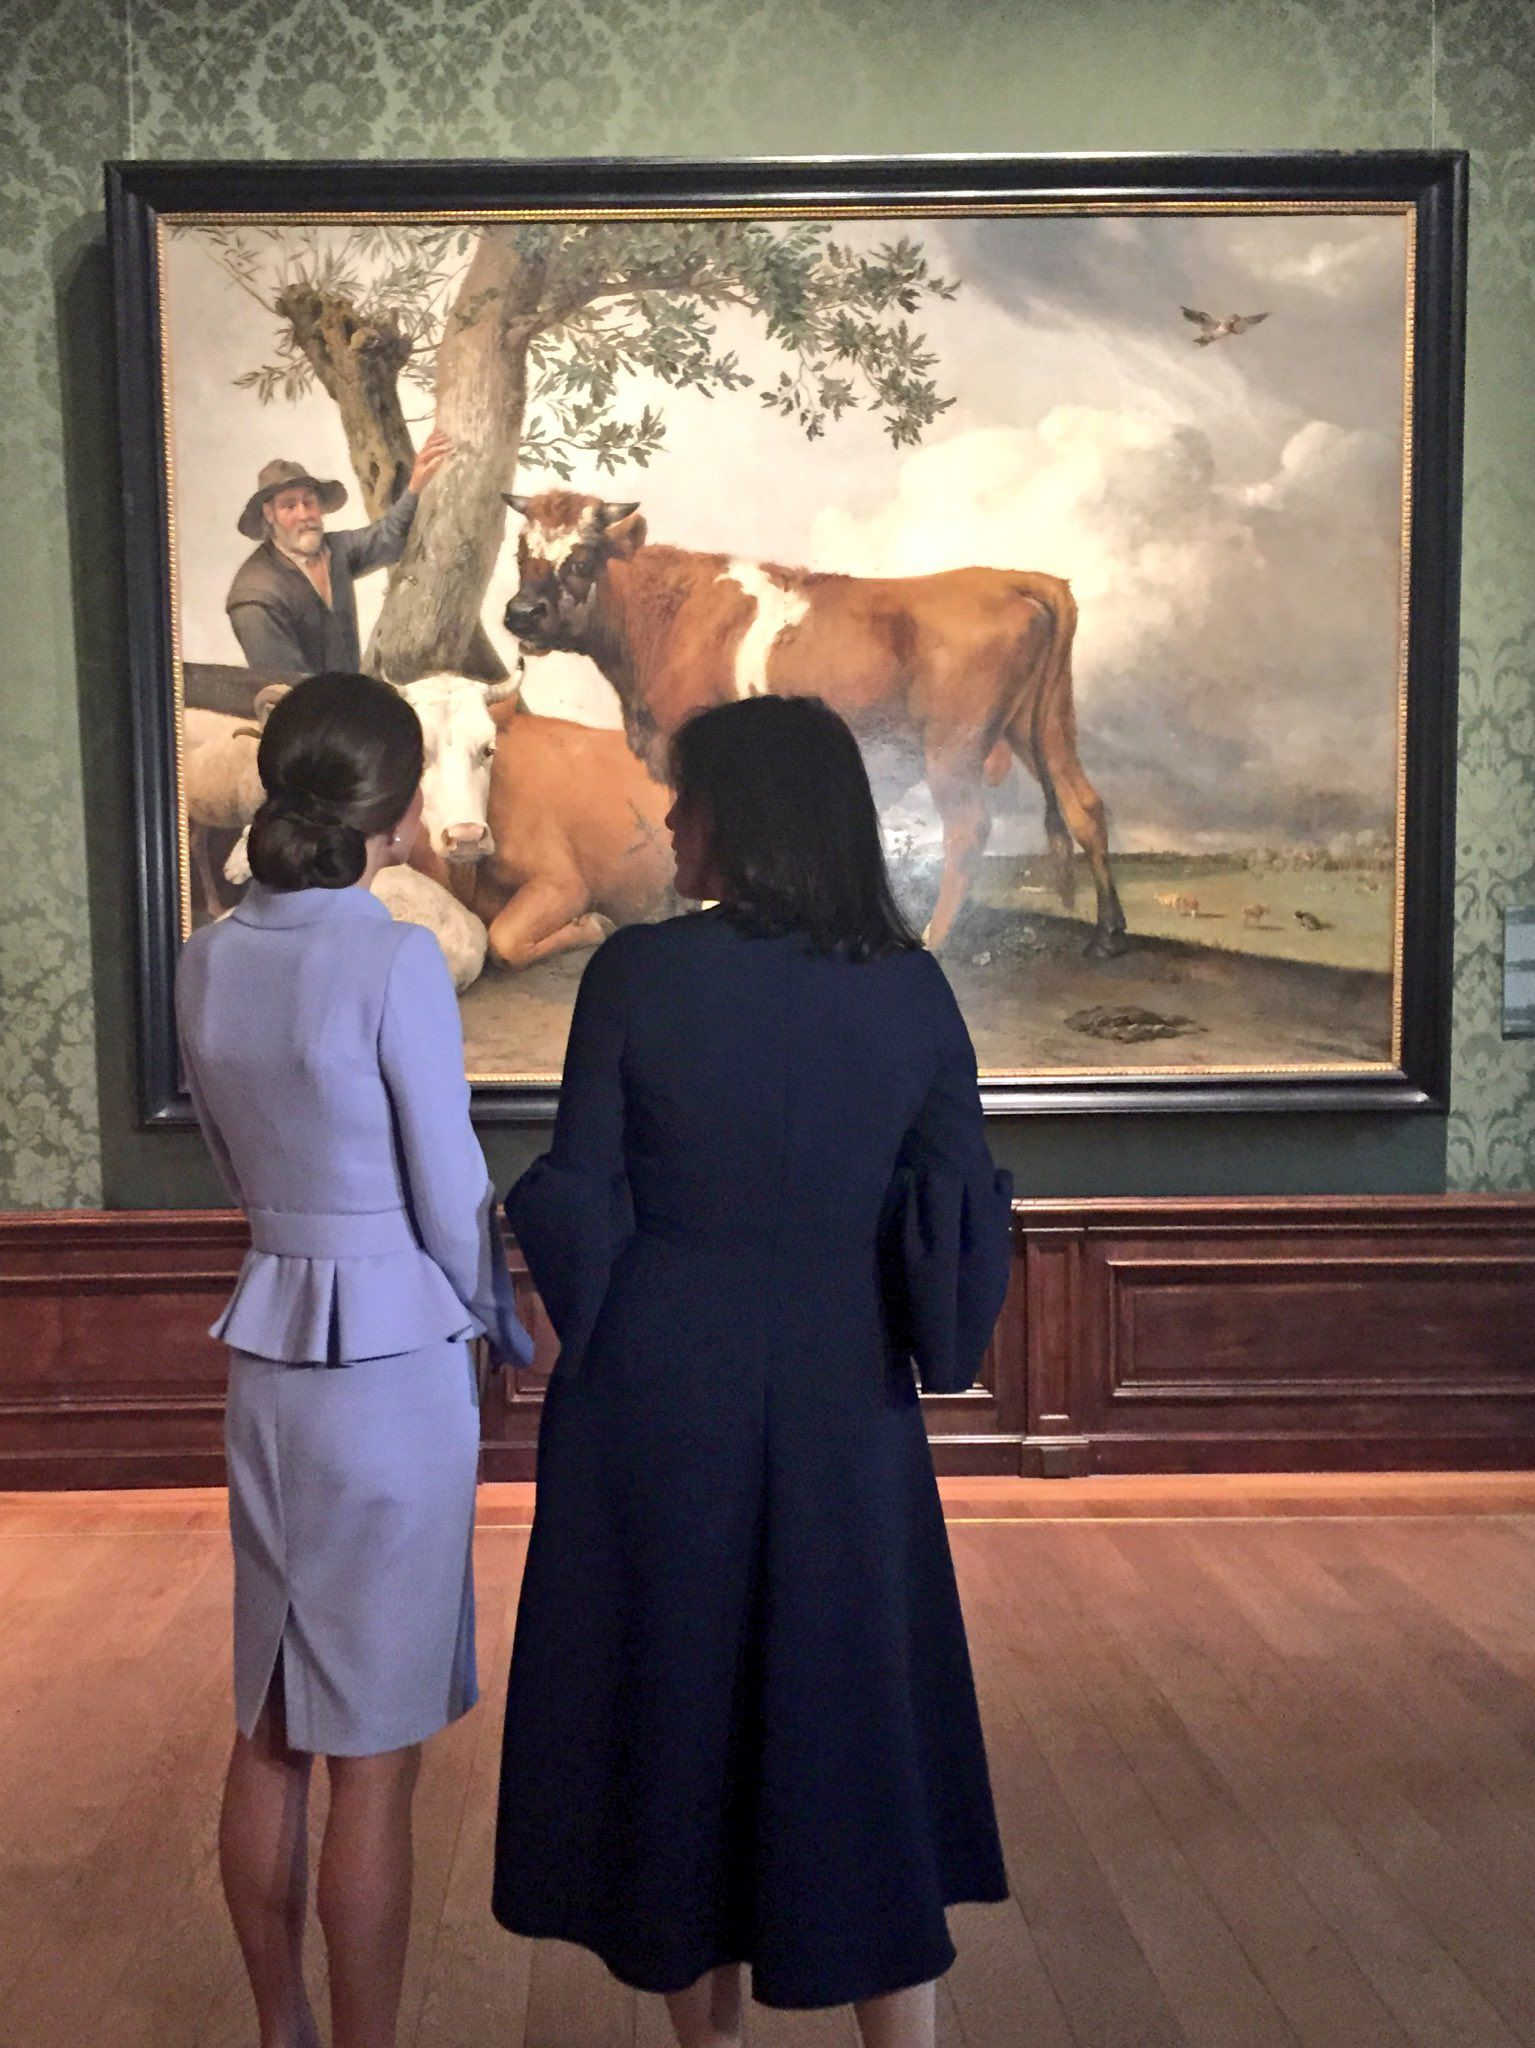 "Kensington Palace on Twitter: ""Surveying the Dutch masterpiece The Bull by Paulus Potter"